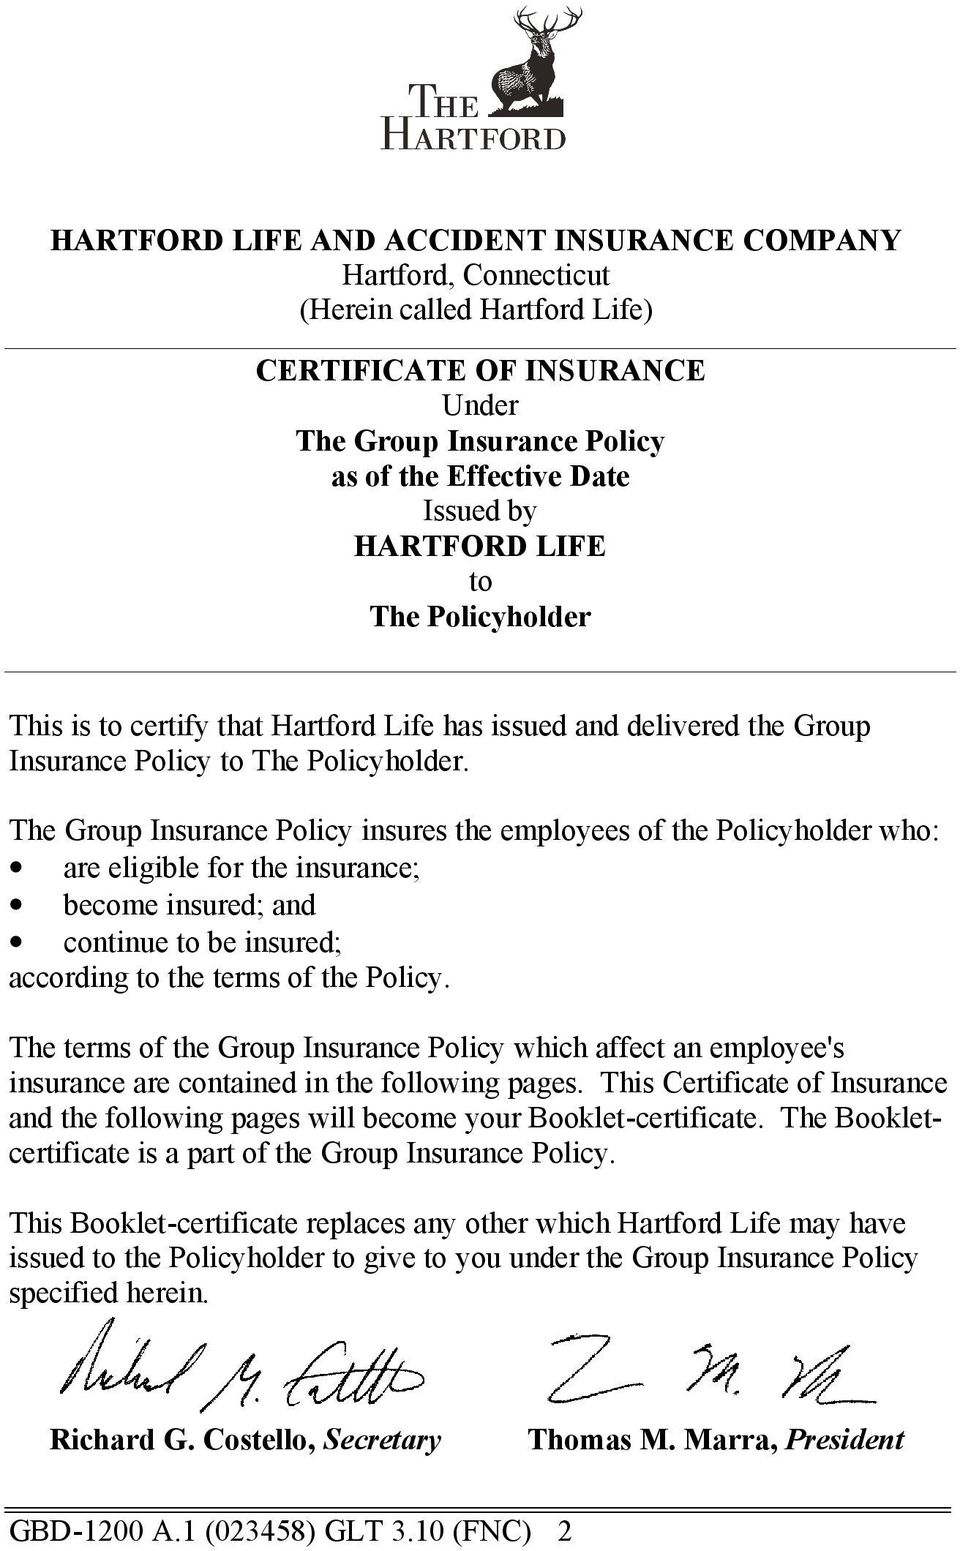 The Group Insurance Policy insures the employees of the Policyholder who: are eligible for the insurance; become insured; and continue to be insured; according to the terms of the Policy.